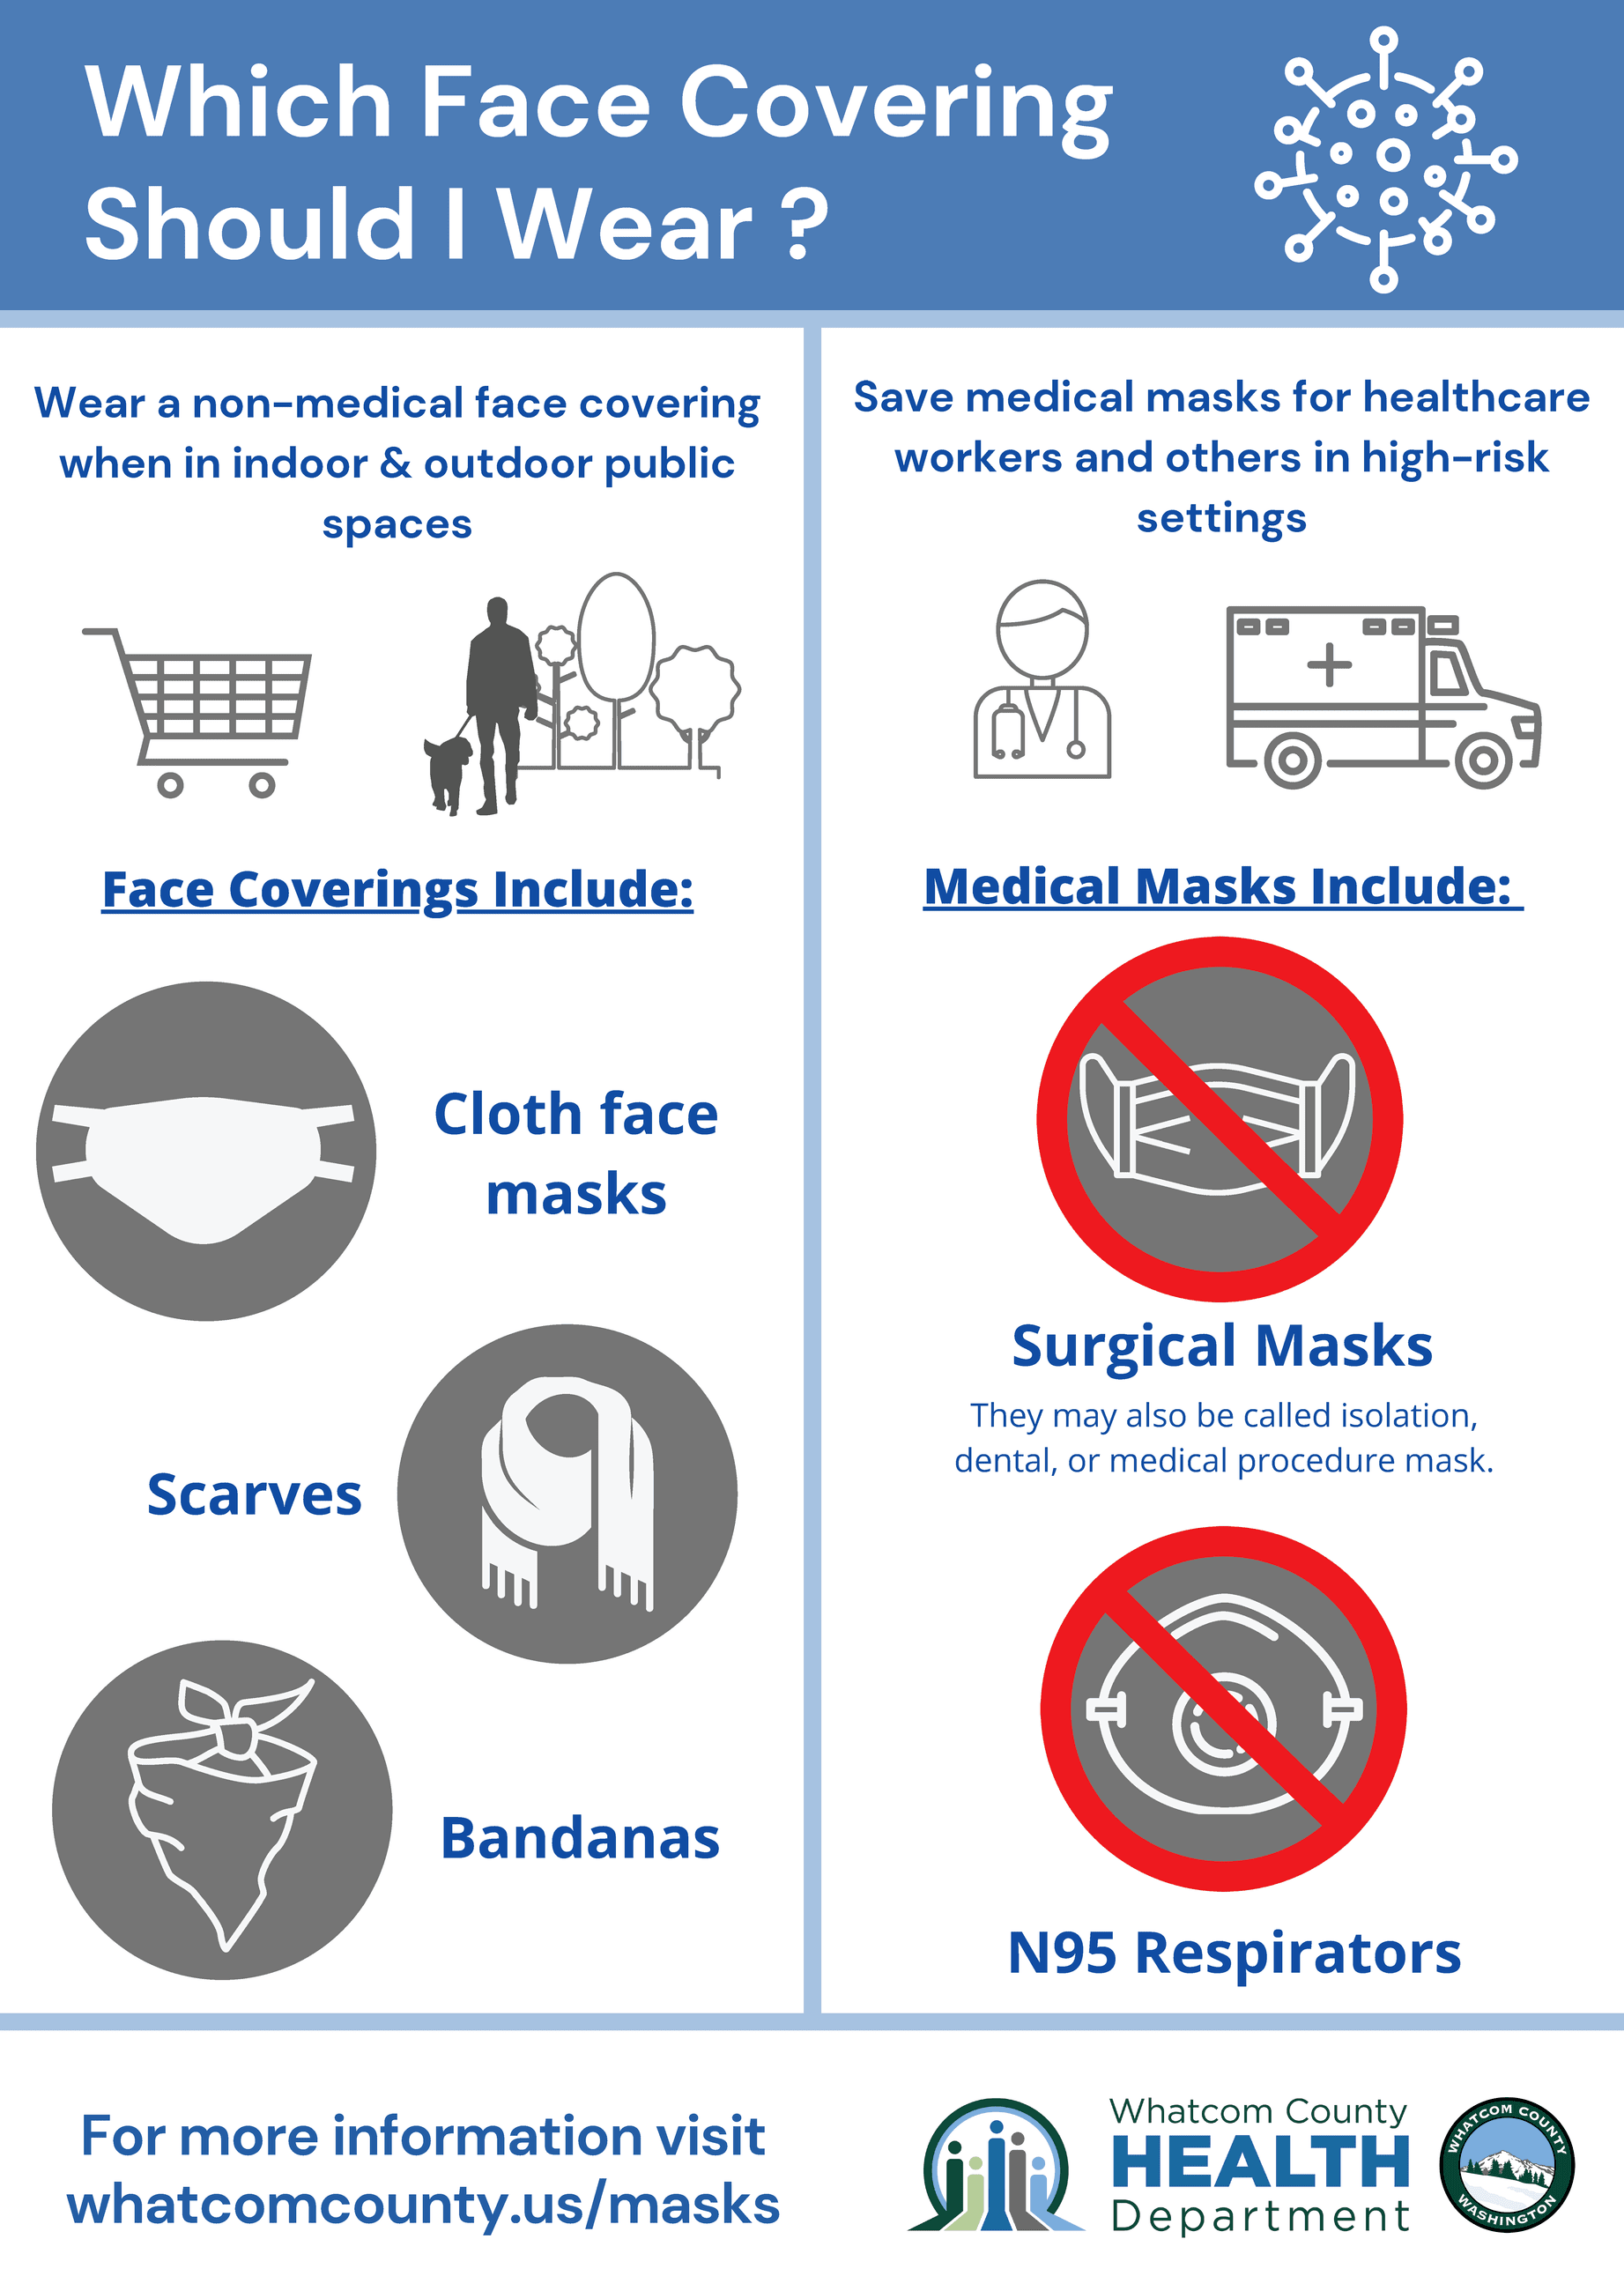 image showing different types of face coverings to wear to prevent spreading COVID-19